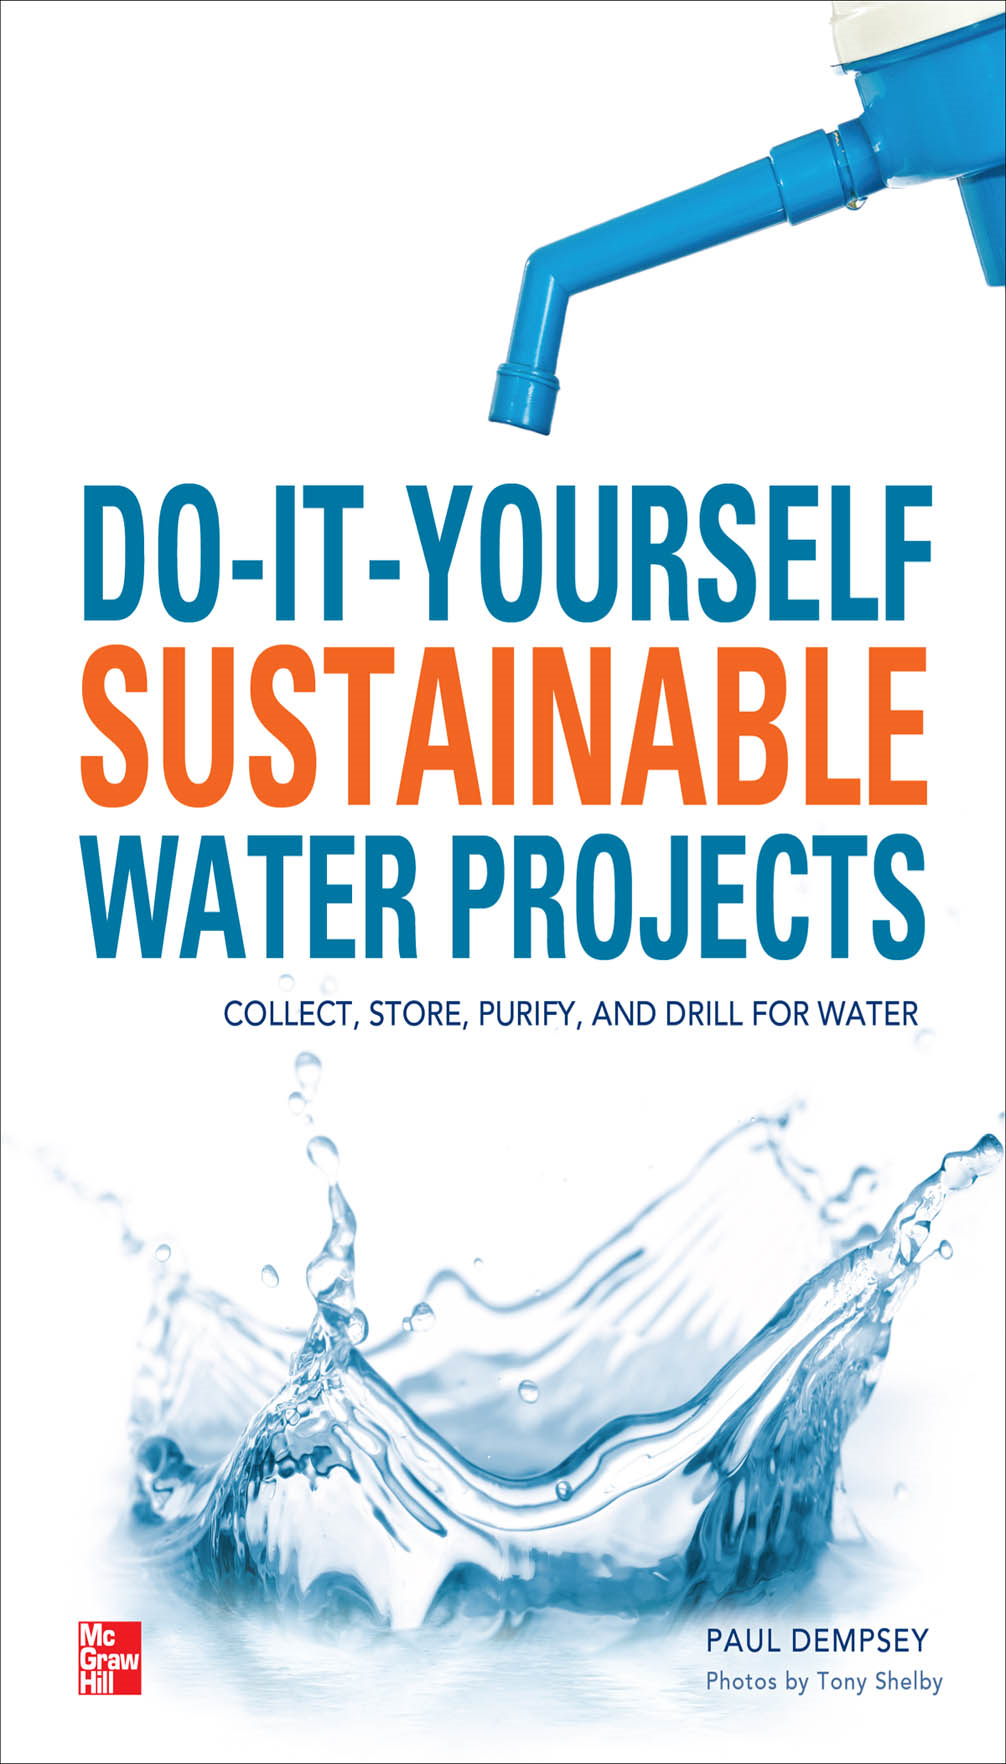 Do-It-Yourself Sustainable Water Projects : Collect, Store, Purify, and Drill for Water